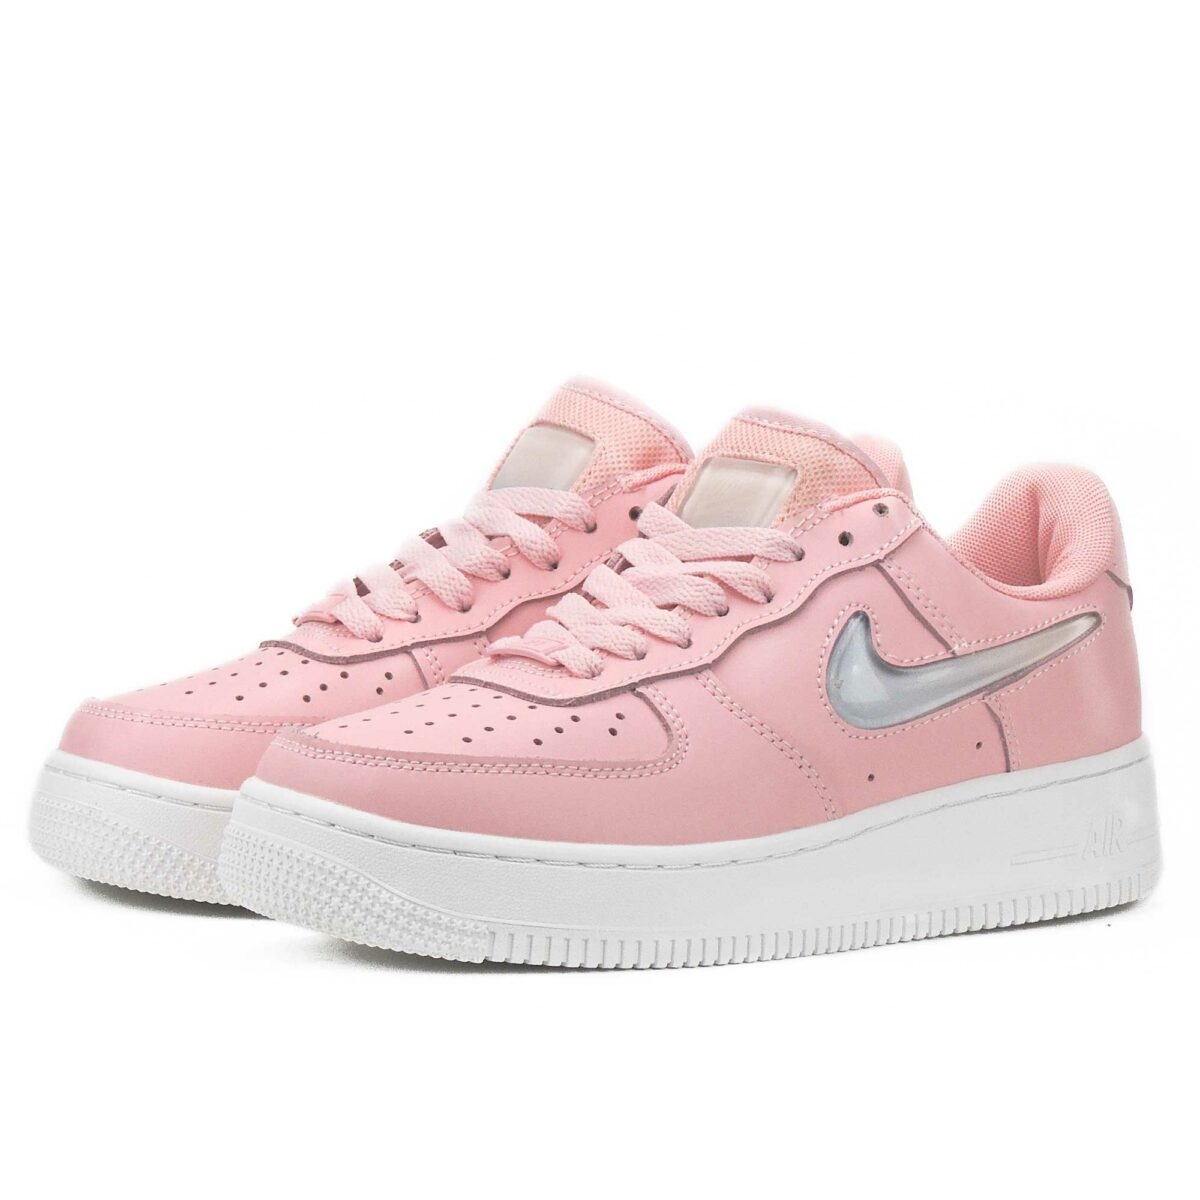 nike air force 1 07 se prm AH6827_500 купить